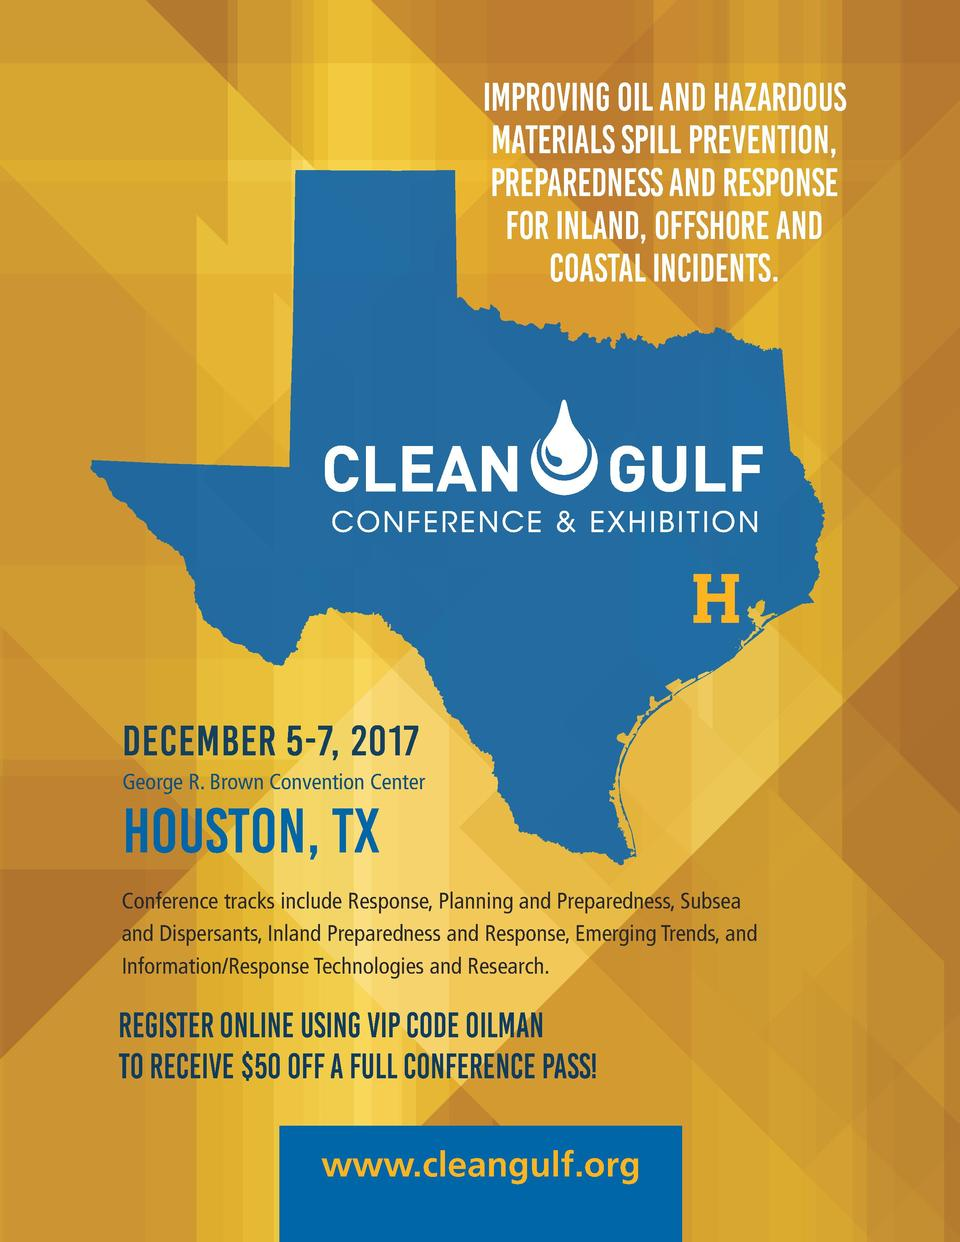 Improving oil and hazardous materials spill prevention, preparedness and response for inland, offshore and coastal inciden...